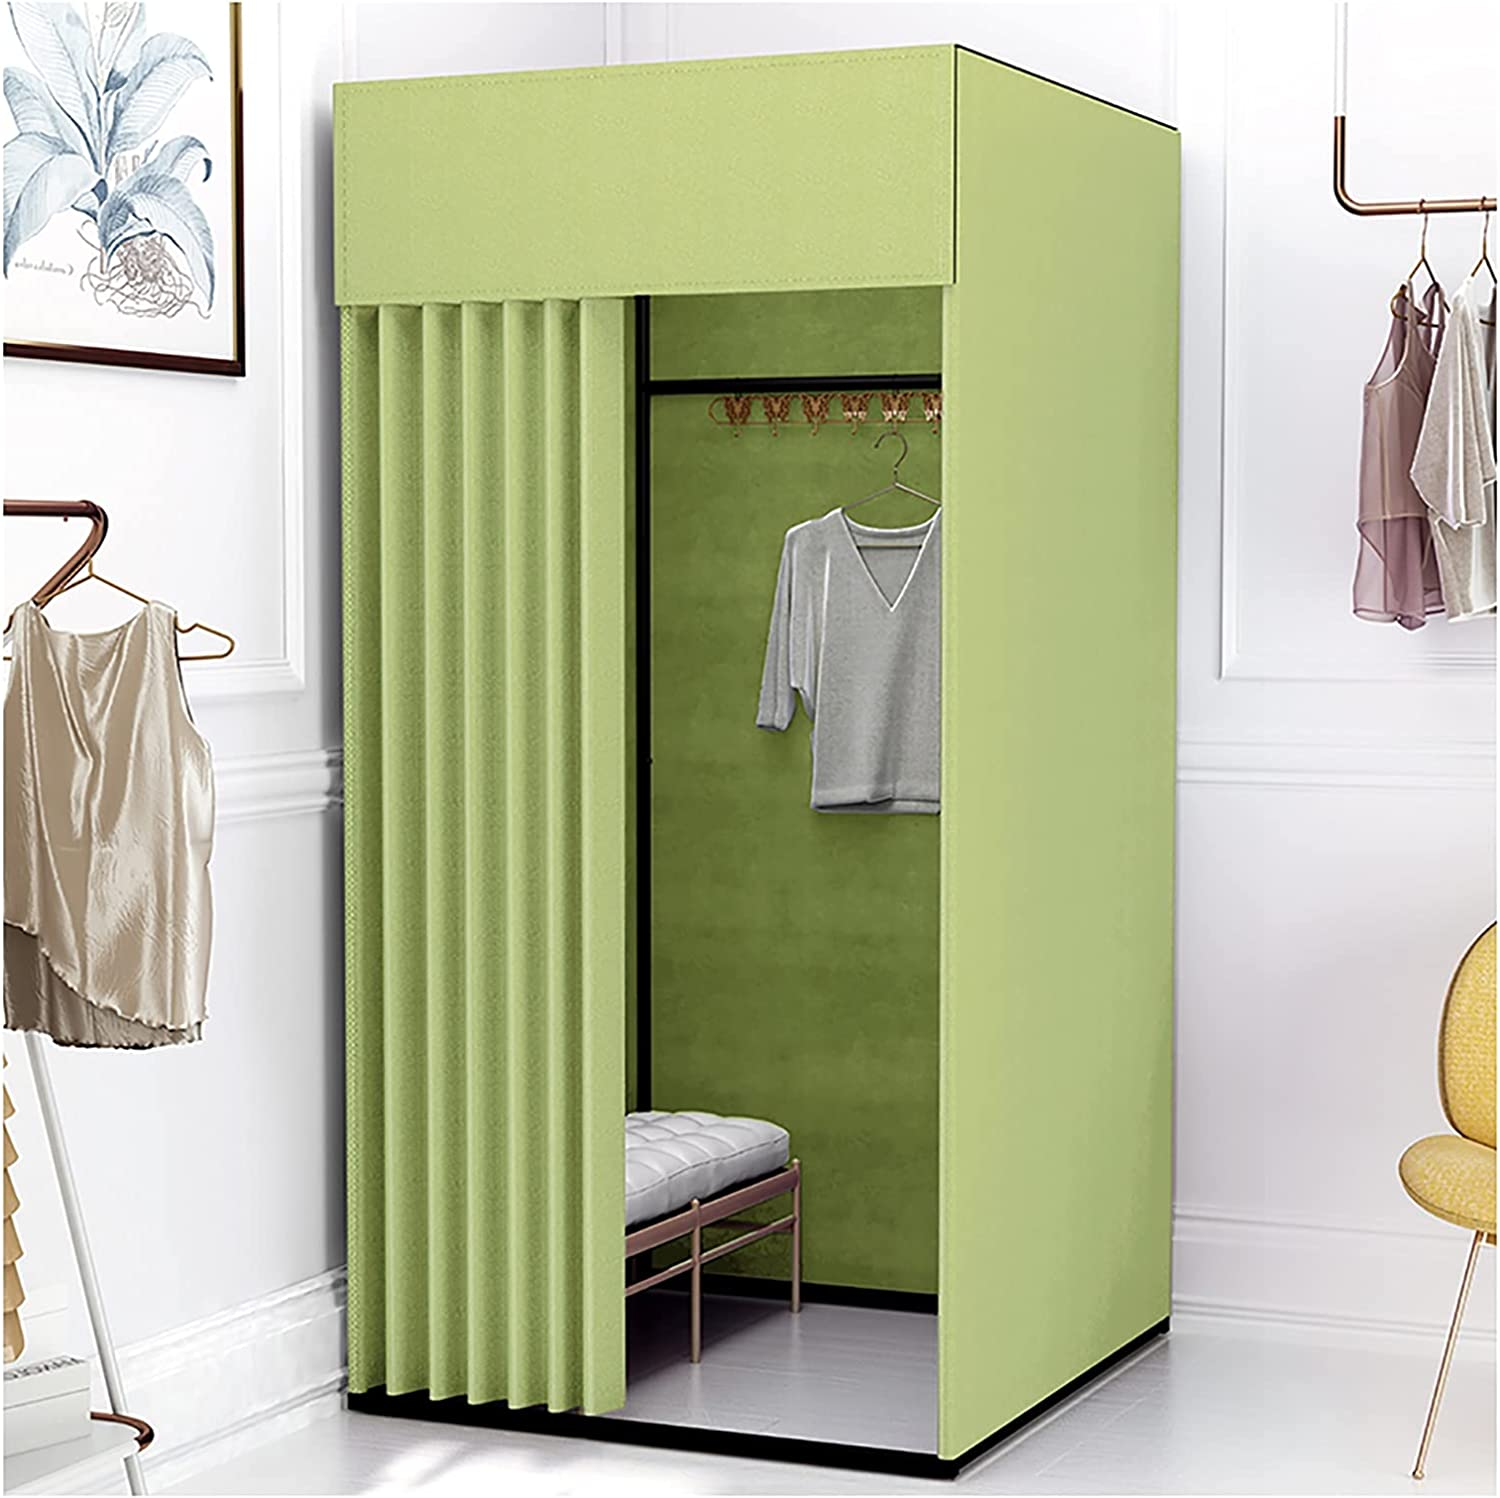 Fitting Room Dressing with Linen Many popular Outlet SALE brands Outdoor Sho Private Cloth